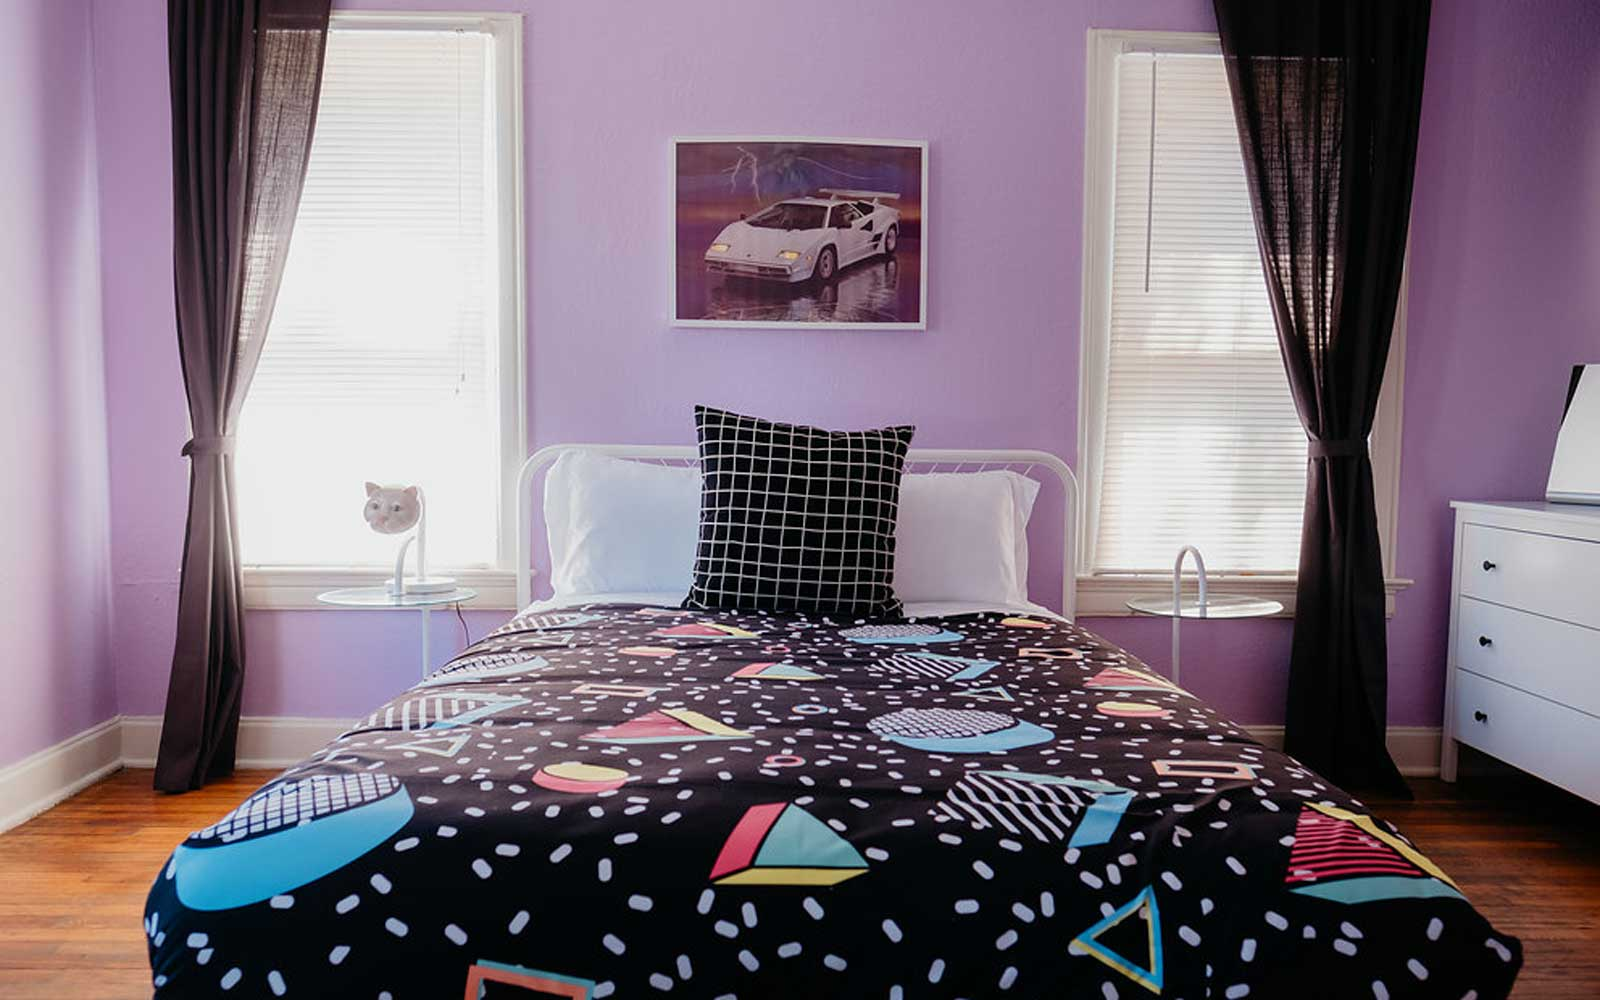 Travel Back to the '80s at This Marty McFly-themed Airbnb